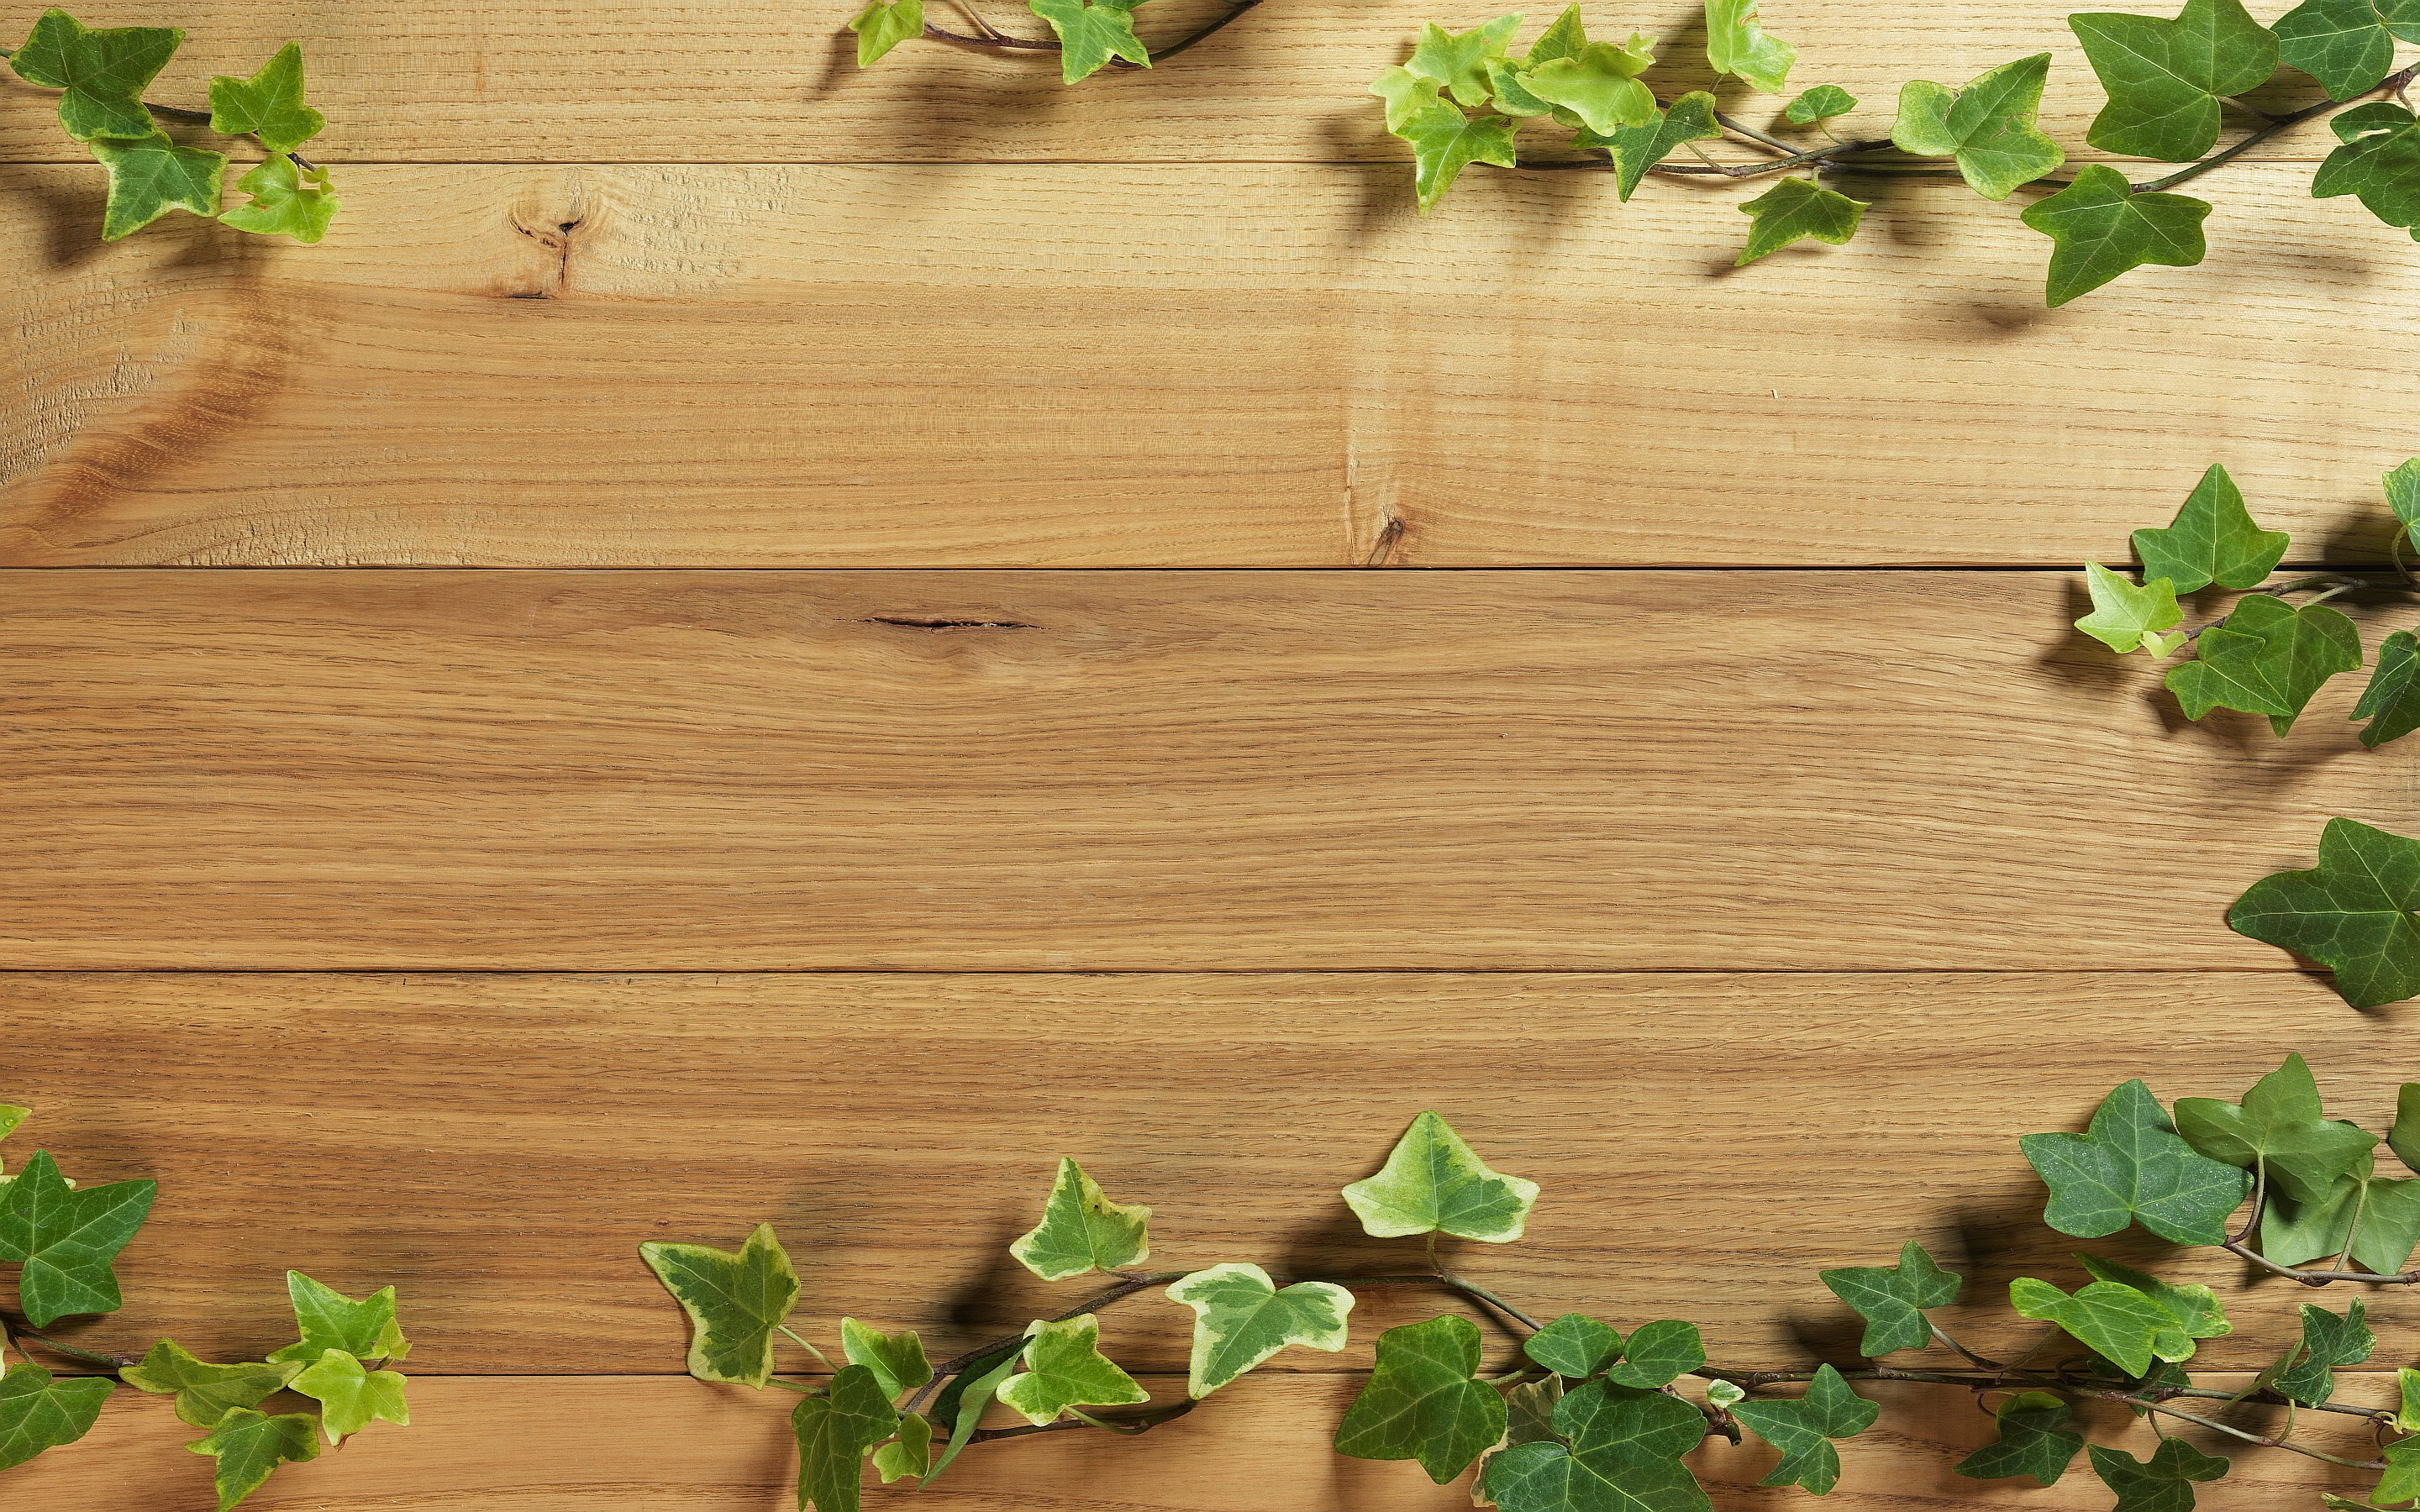 wood wallpaper 16 Awesome Pictures